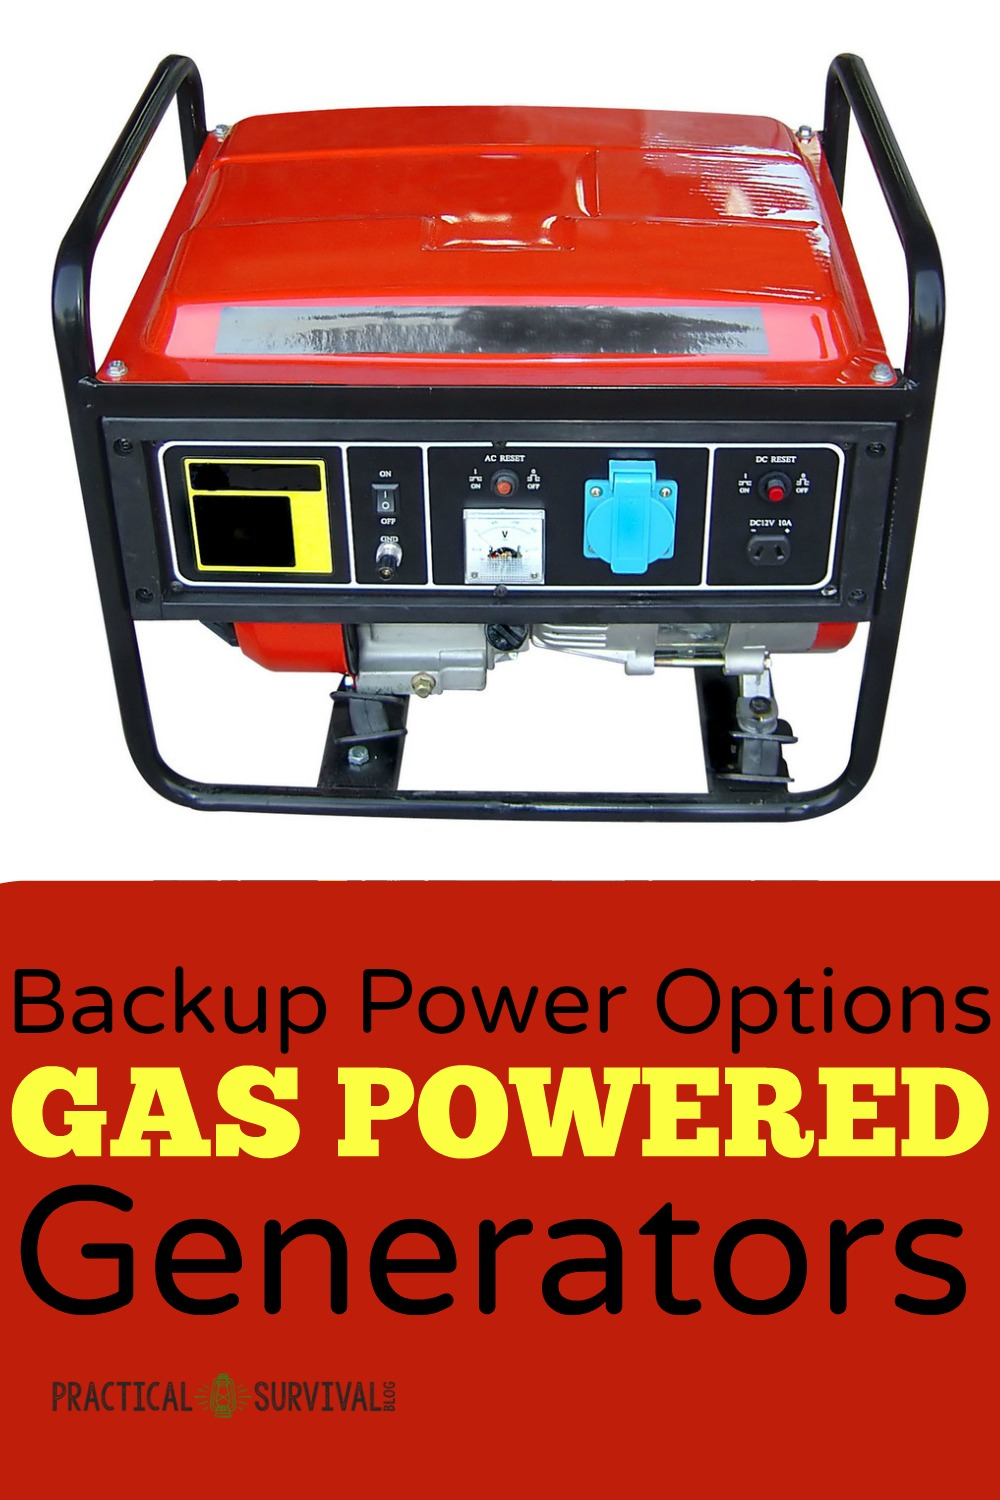 Backup Power Options For When The Goes Out Gas Powered On Reset Generator Generators